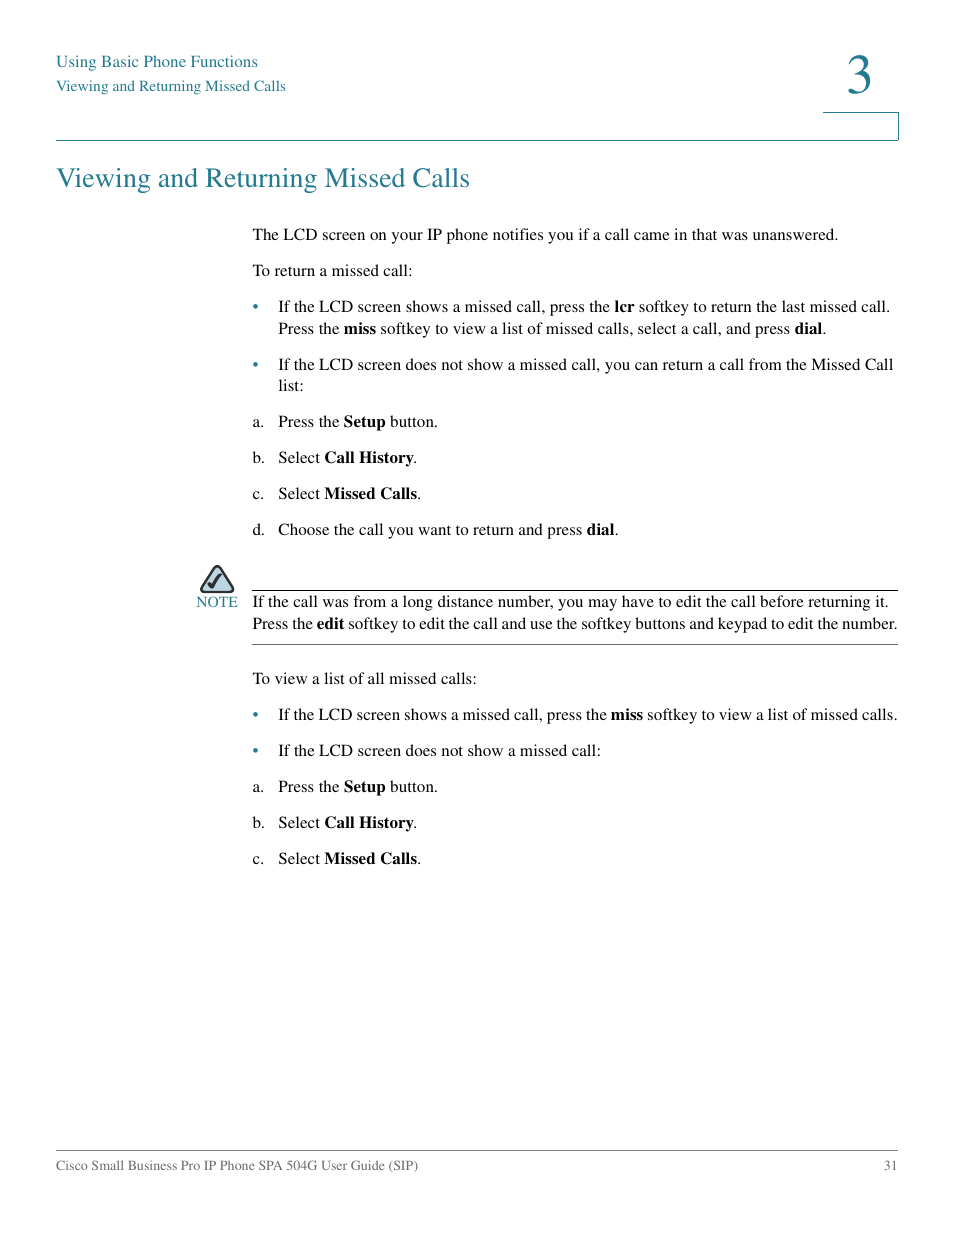 Viewing and returning missed calls | Cisco IP Phone SPA 504G